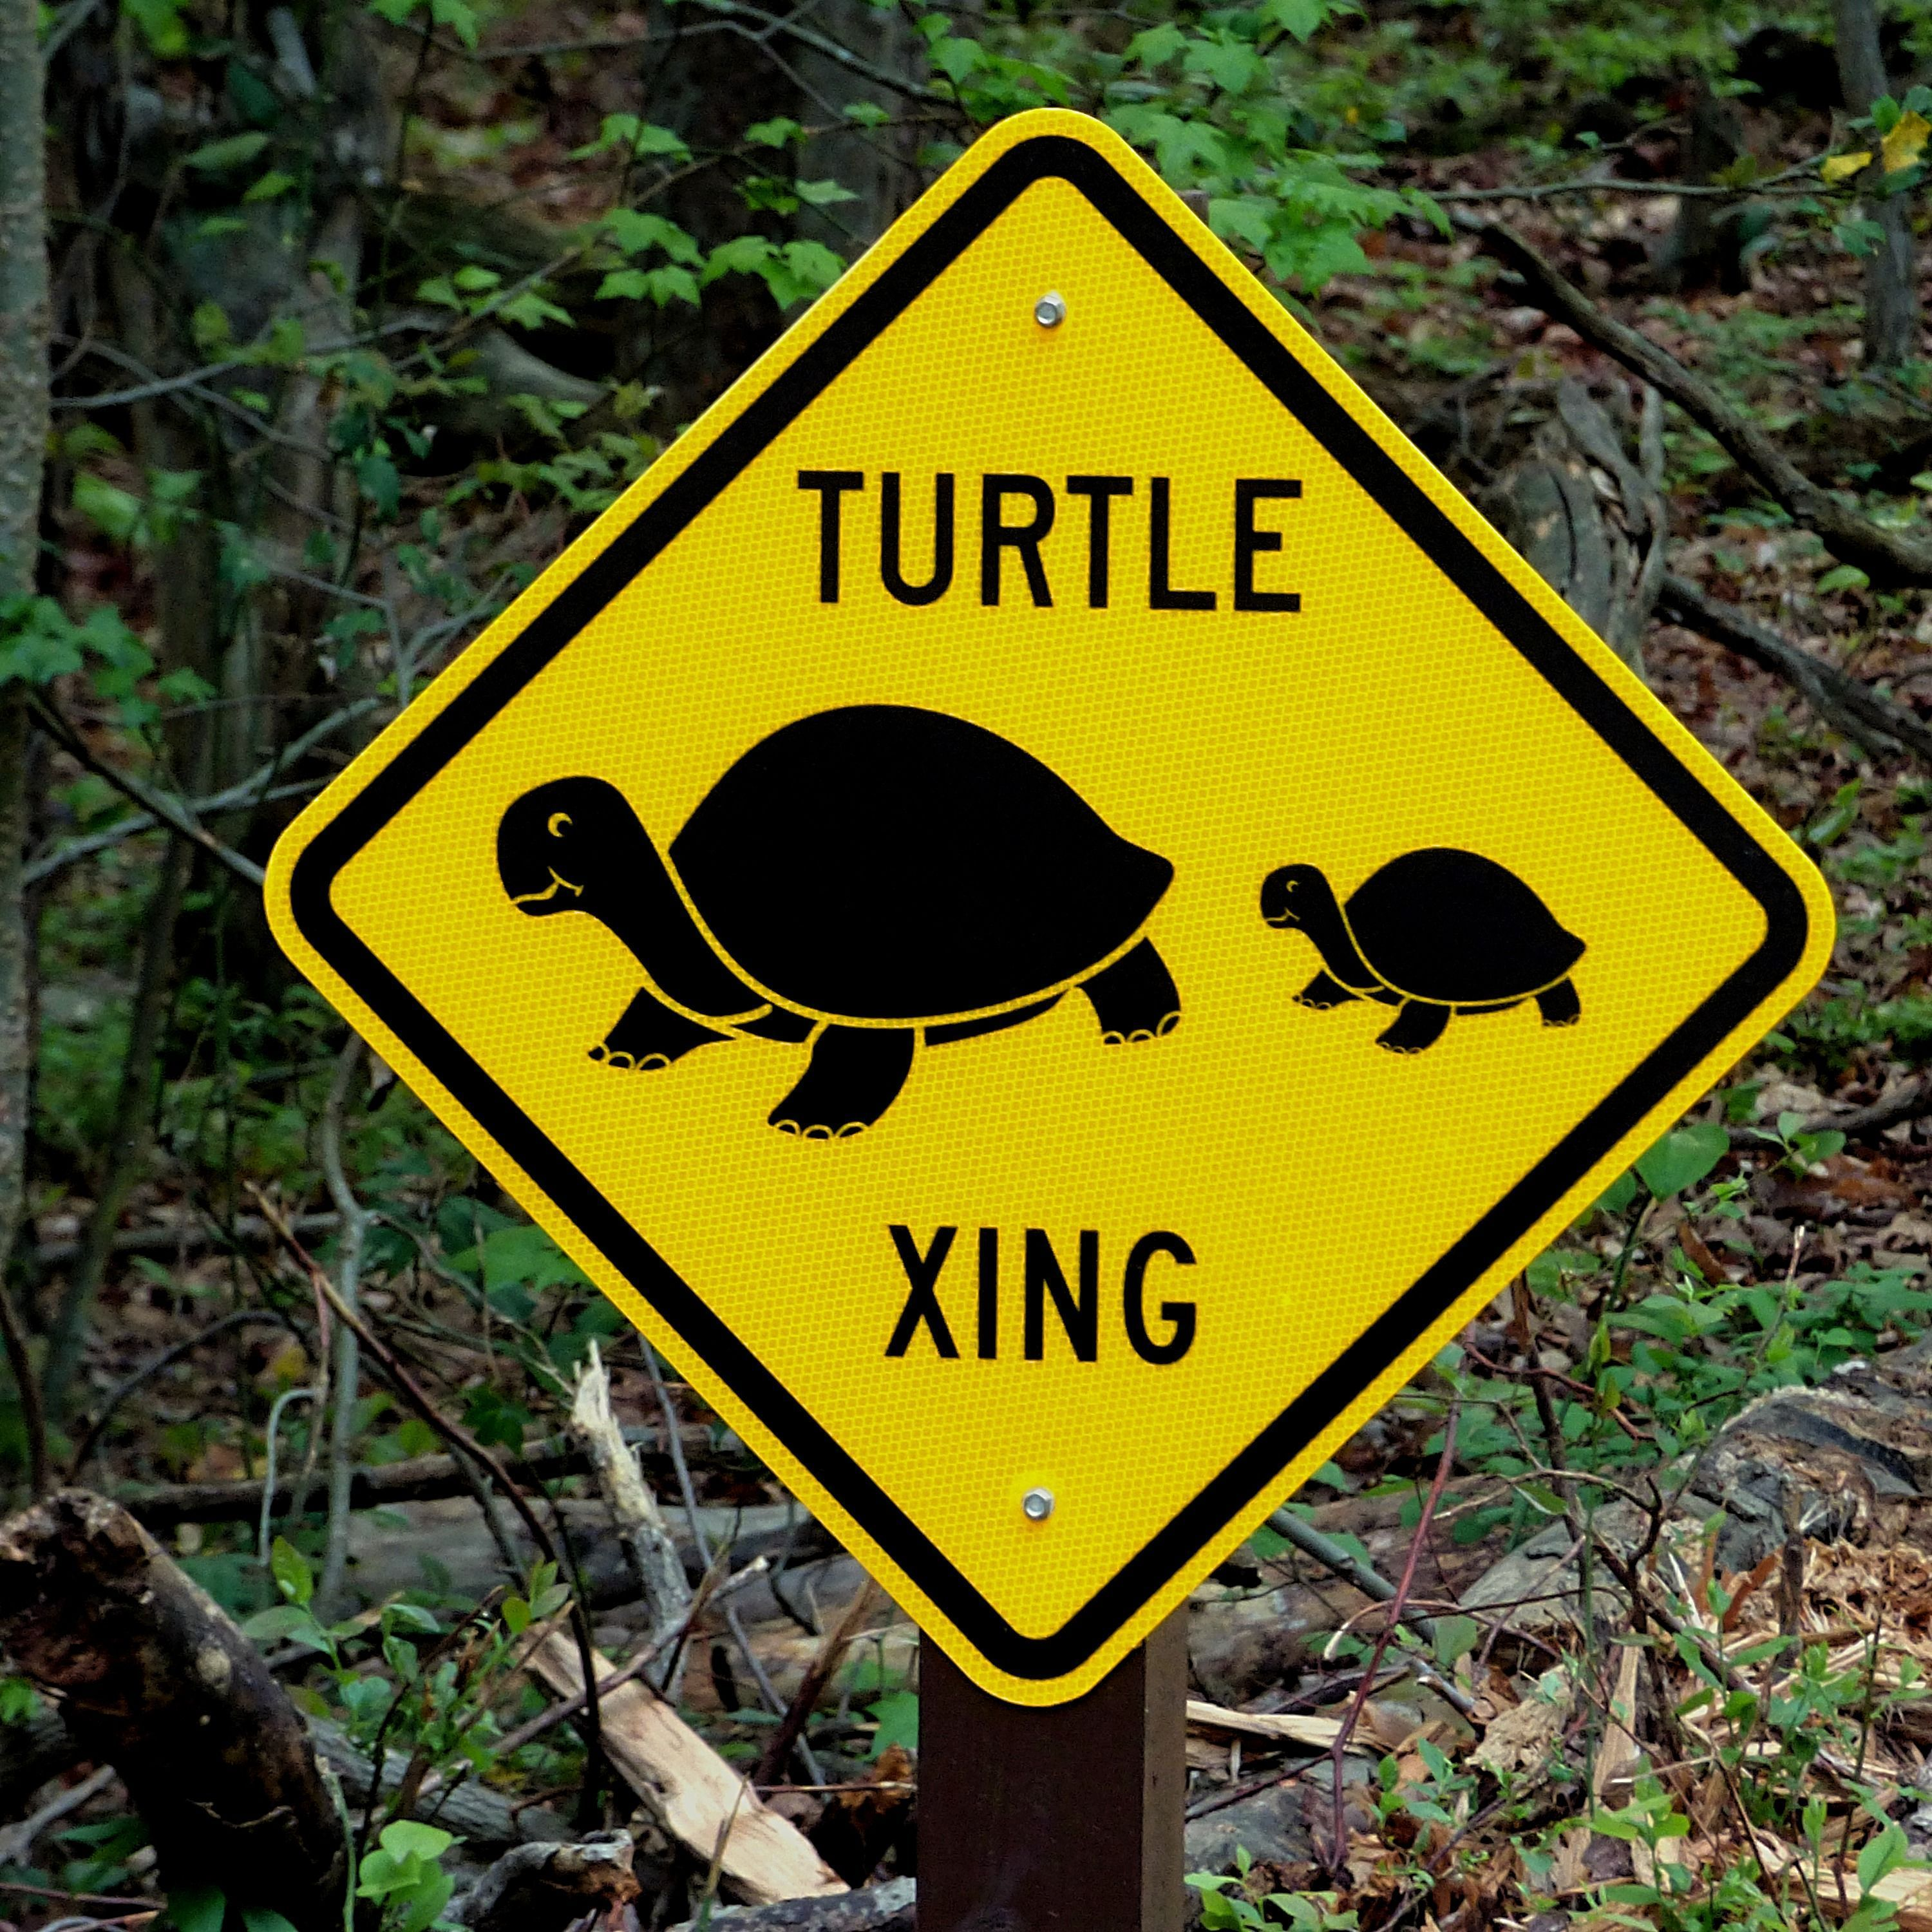 Turtles are believed to have been around for over million years